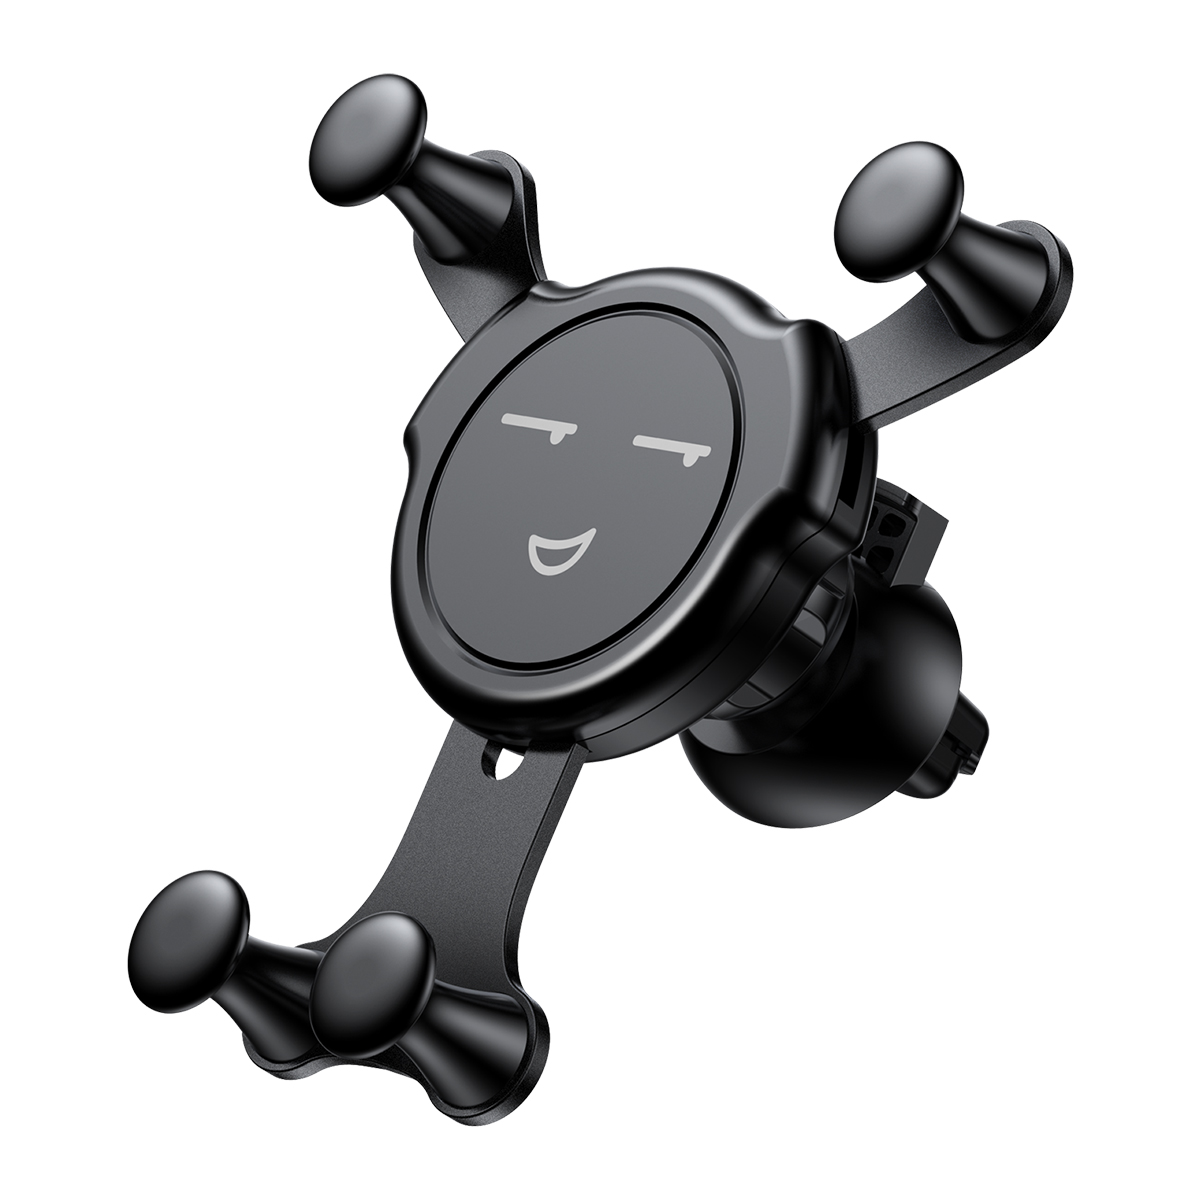 Baseus Emoticon Gravity Car Mount SUYL-EMKX | One-Hand Operation | Multi-Angle | Charging Hole | Give the Phone a Love Hug